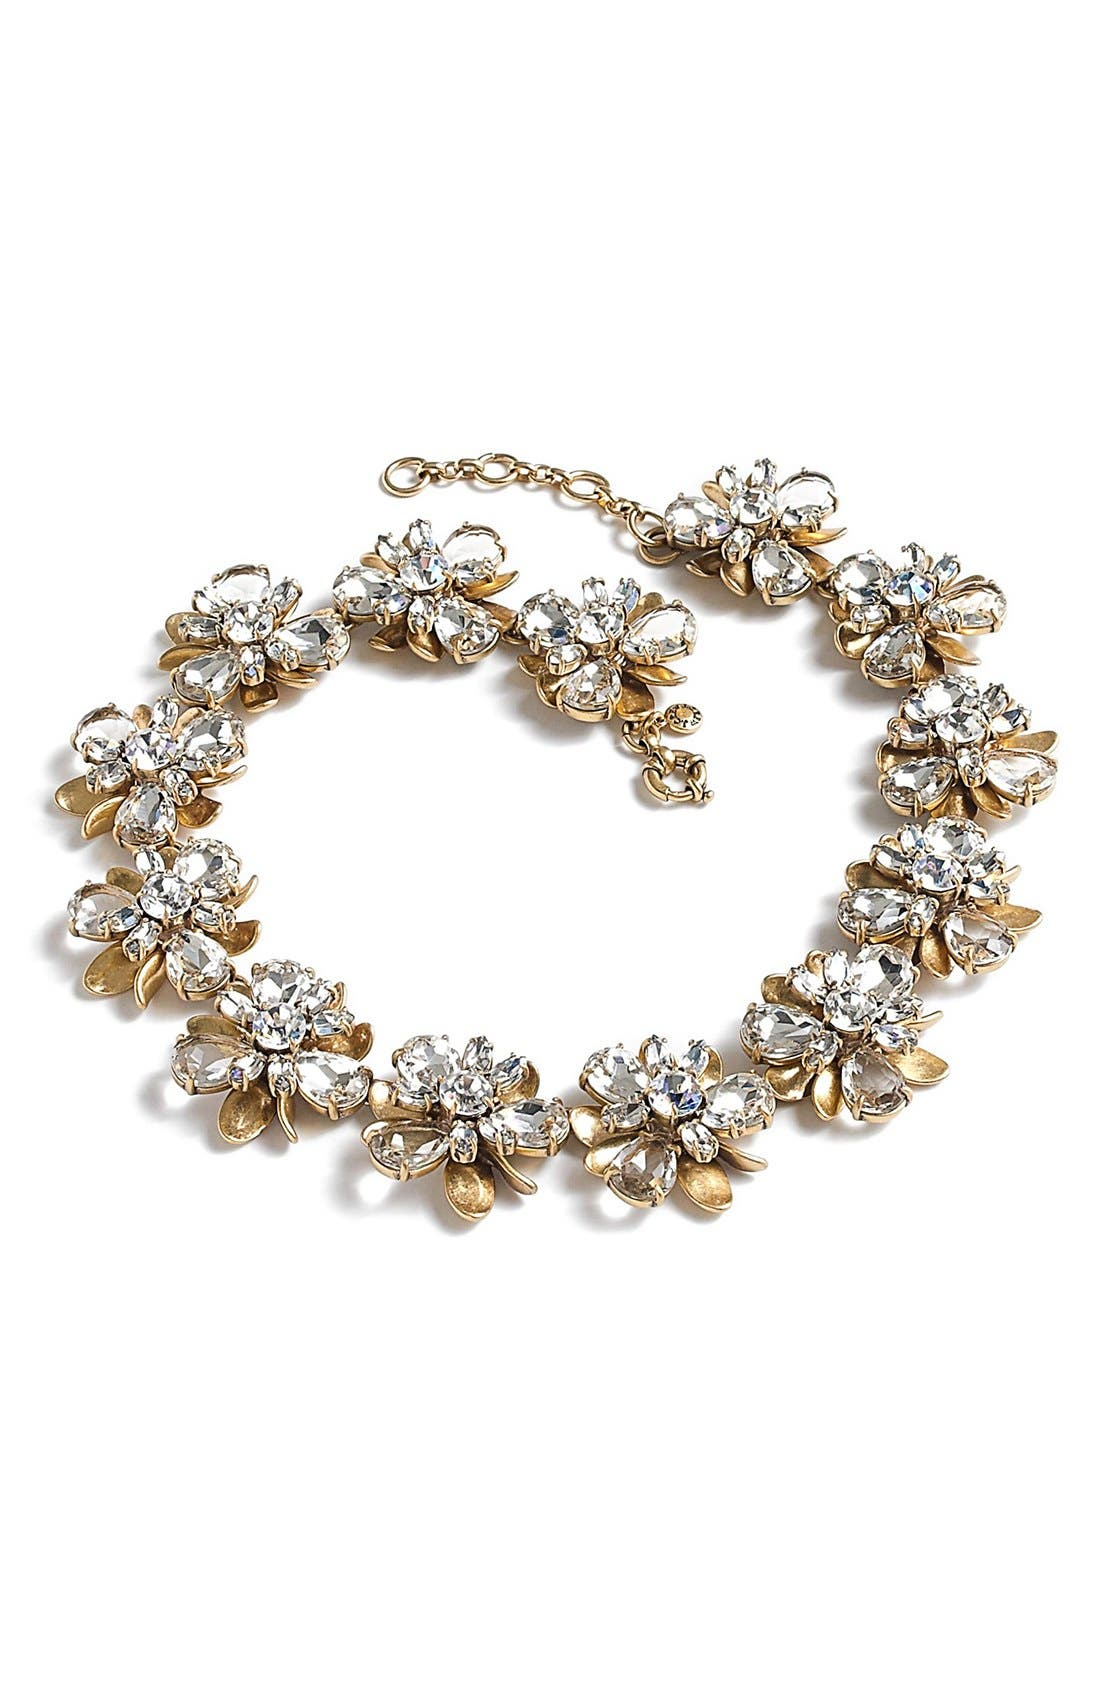 Alternate Image 1 Selected - J.Crew 'Crystal Blossom' Necklace